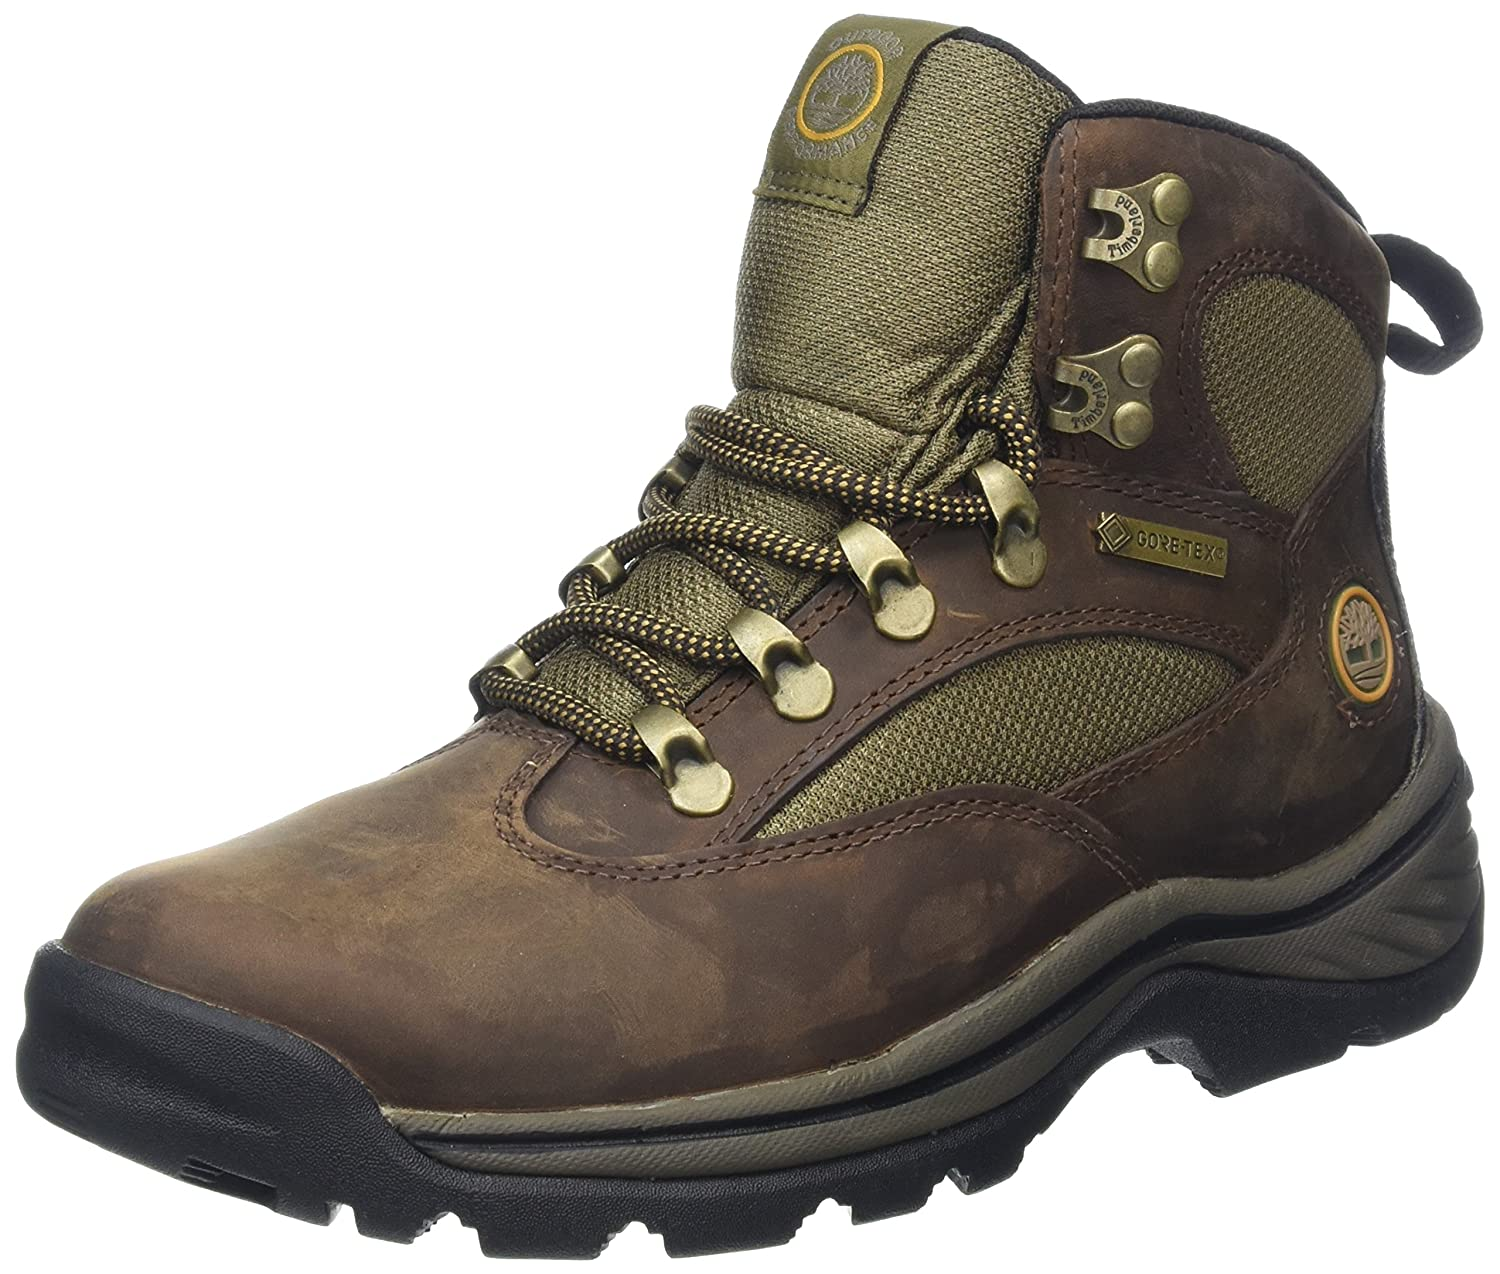 Timberland Women's Chocorua Trail Boot 15631